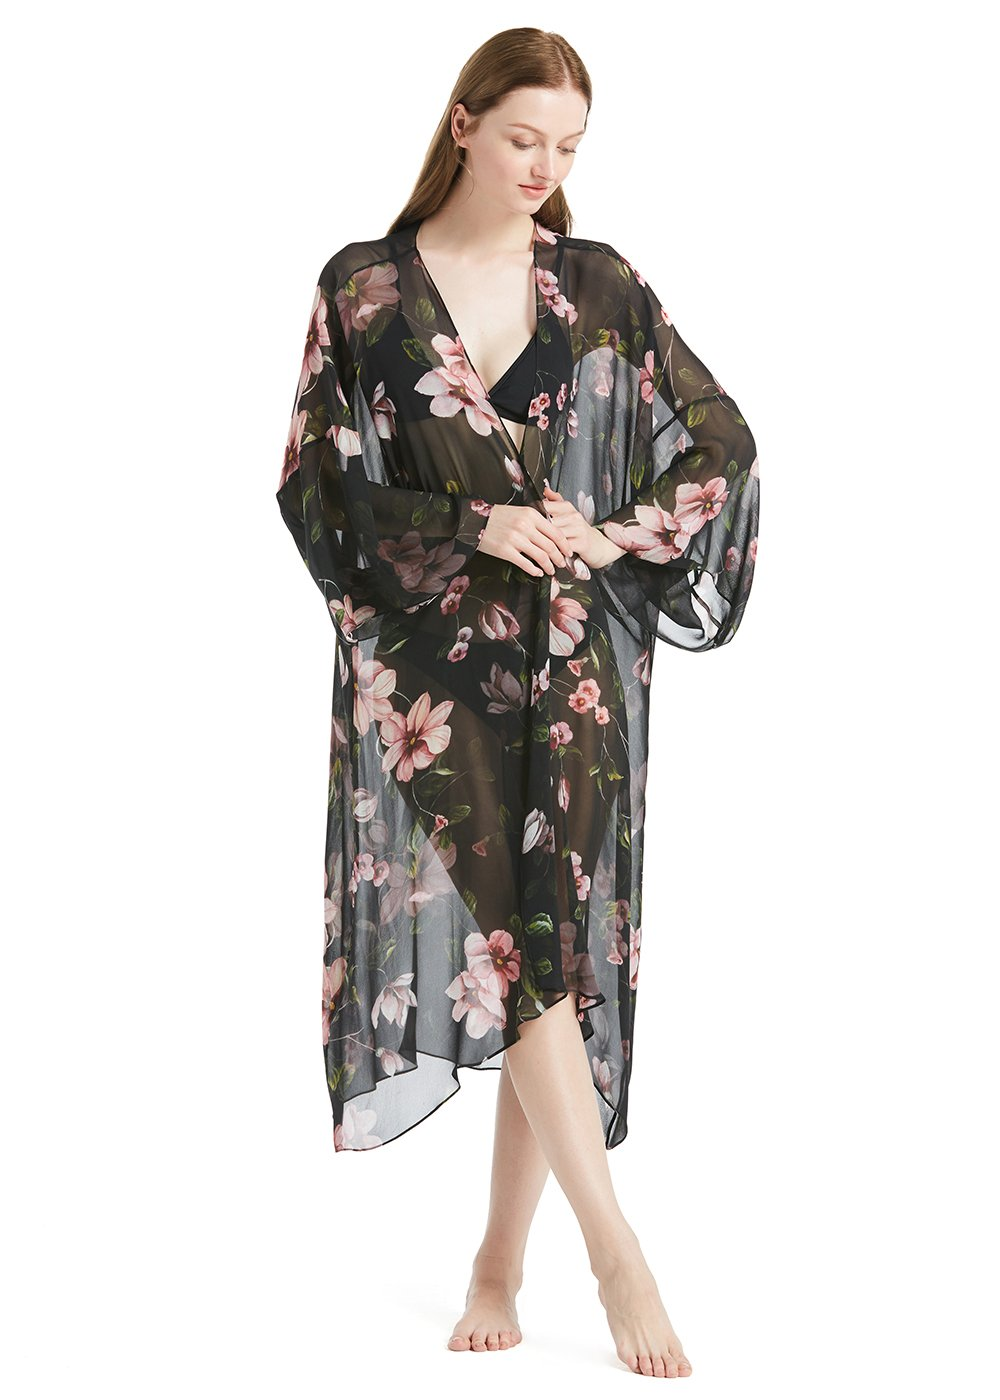 LILYSILK Silk Kimono for Women 12MM Oversize High Low Floral Summer Beach Outerwear Casual Elegant Floral Black XL/14-16